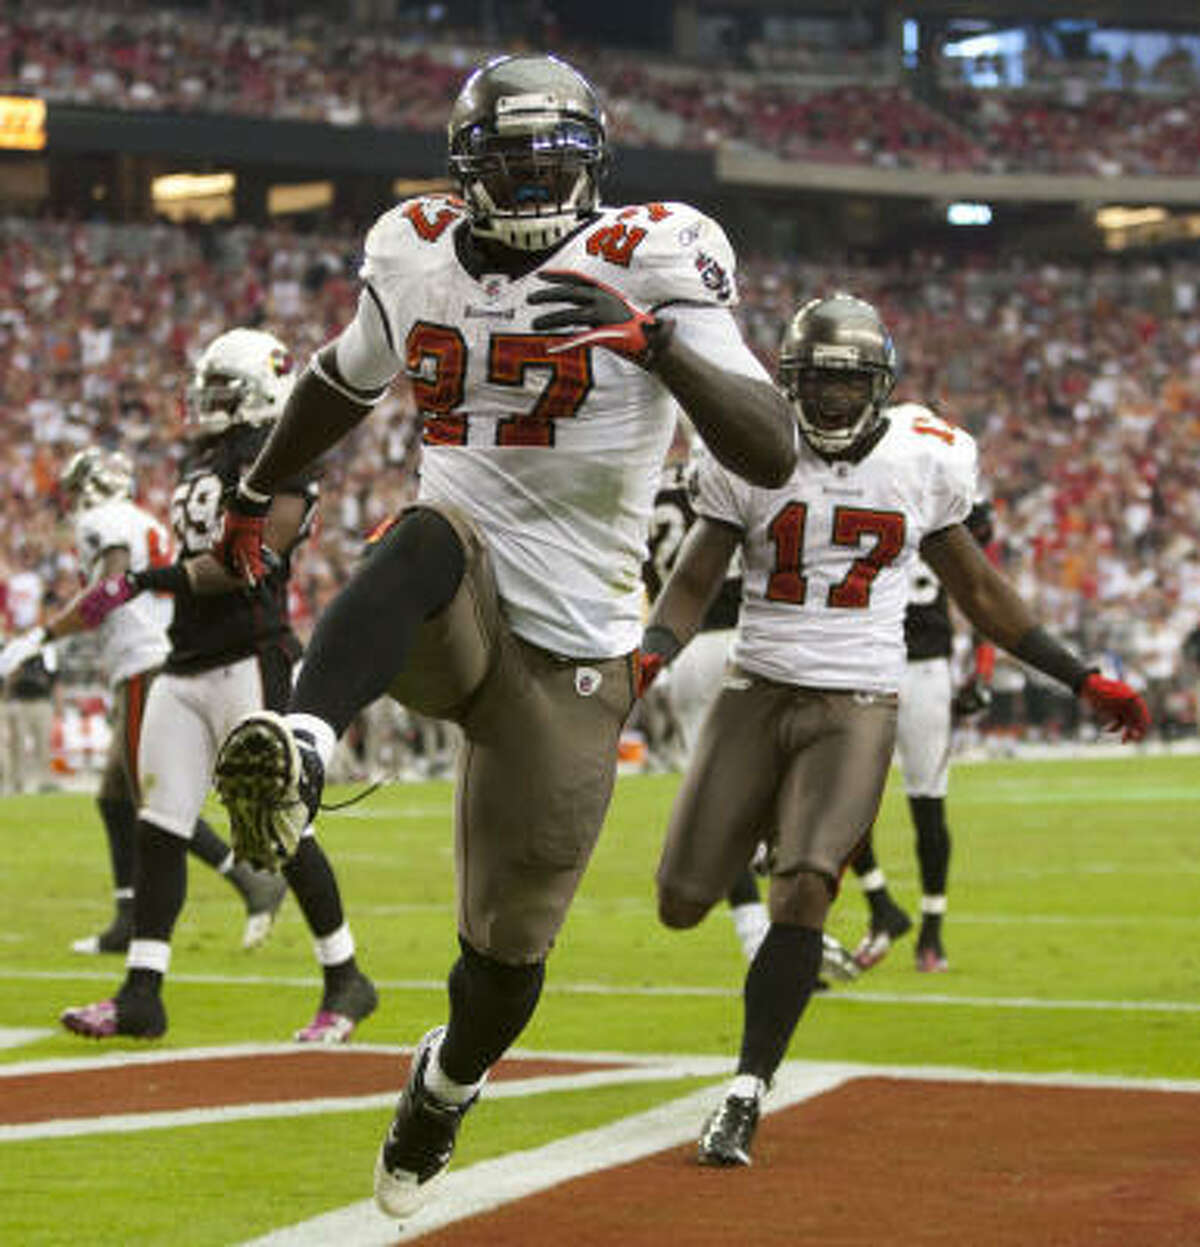 Buccaneers 38, Cardinals 35 Buccaneers running back LeGarrette Blount rushed for 120 yards and two touchdowns.